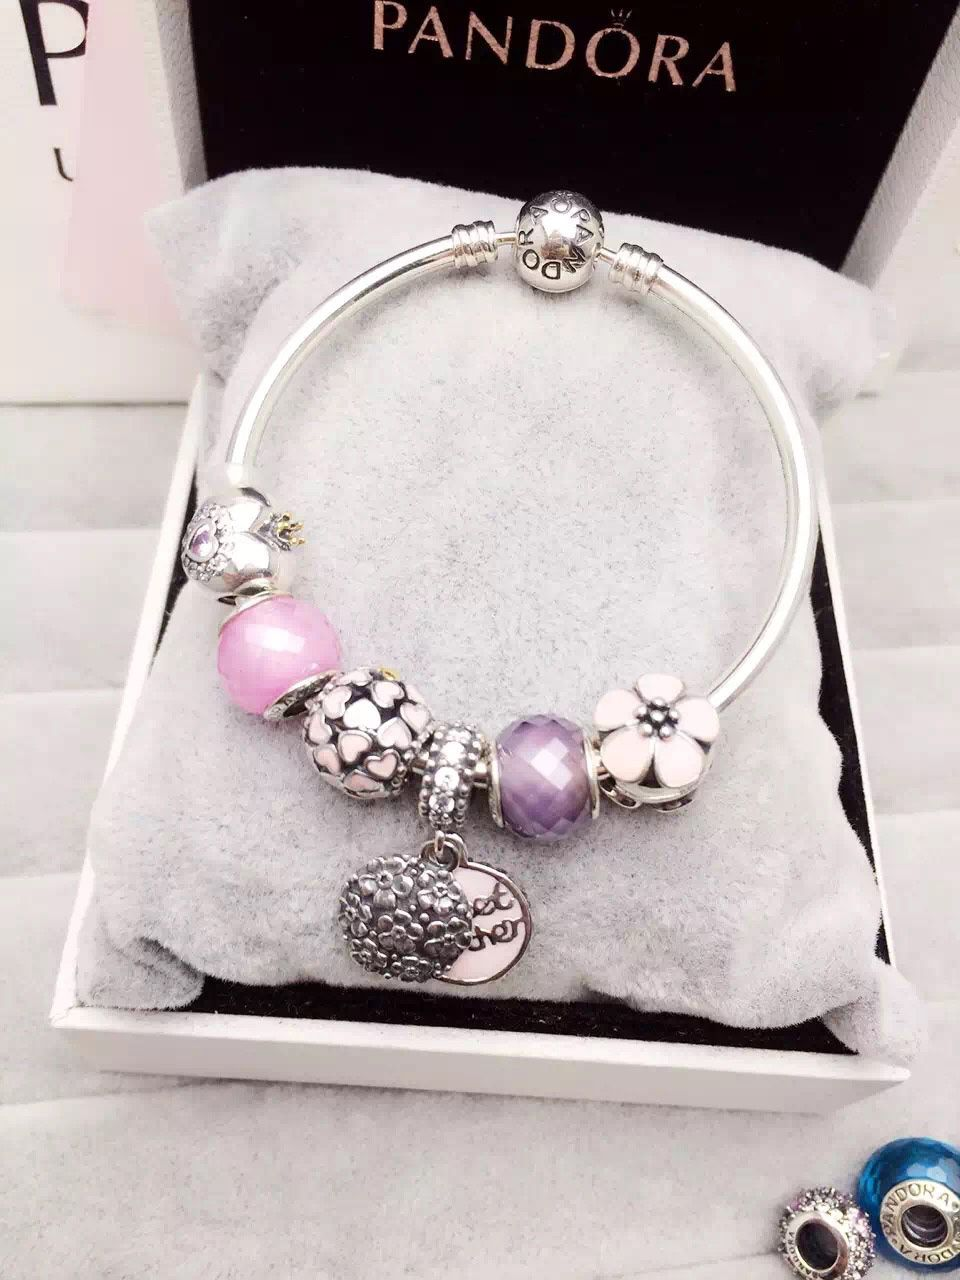 8a11594ec ... 179 Pandora Bangle Charm Bracelet Pink Purple. Hot Sale 279 ...